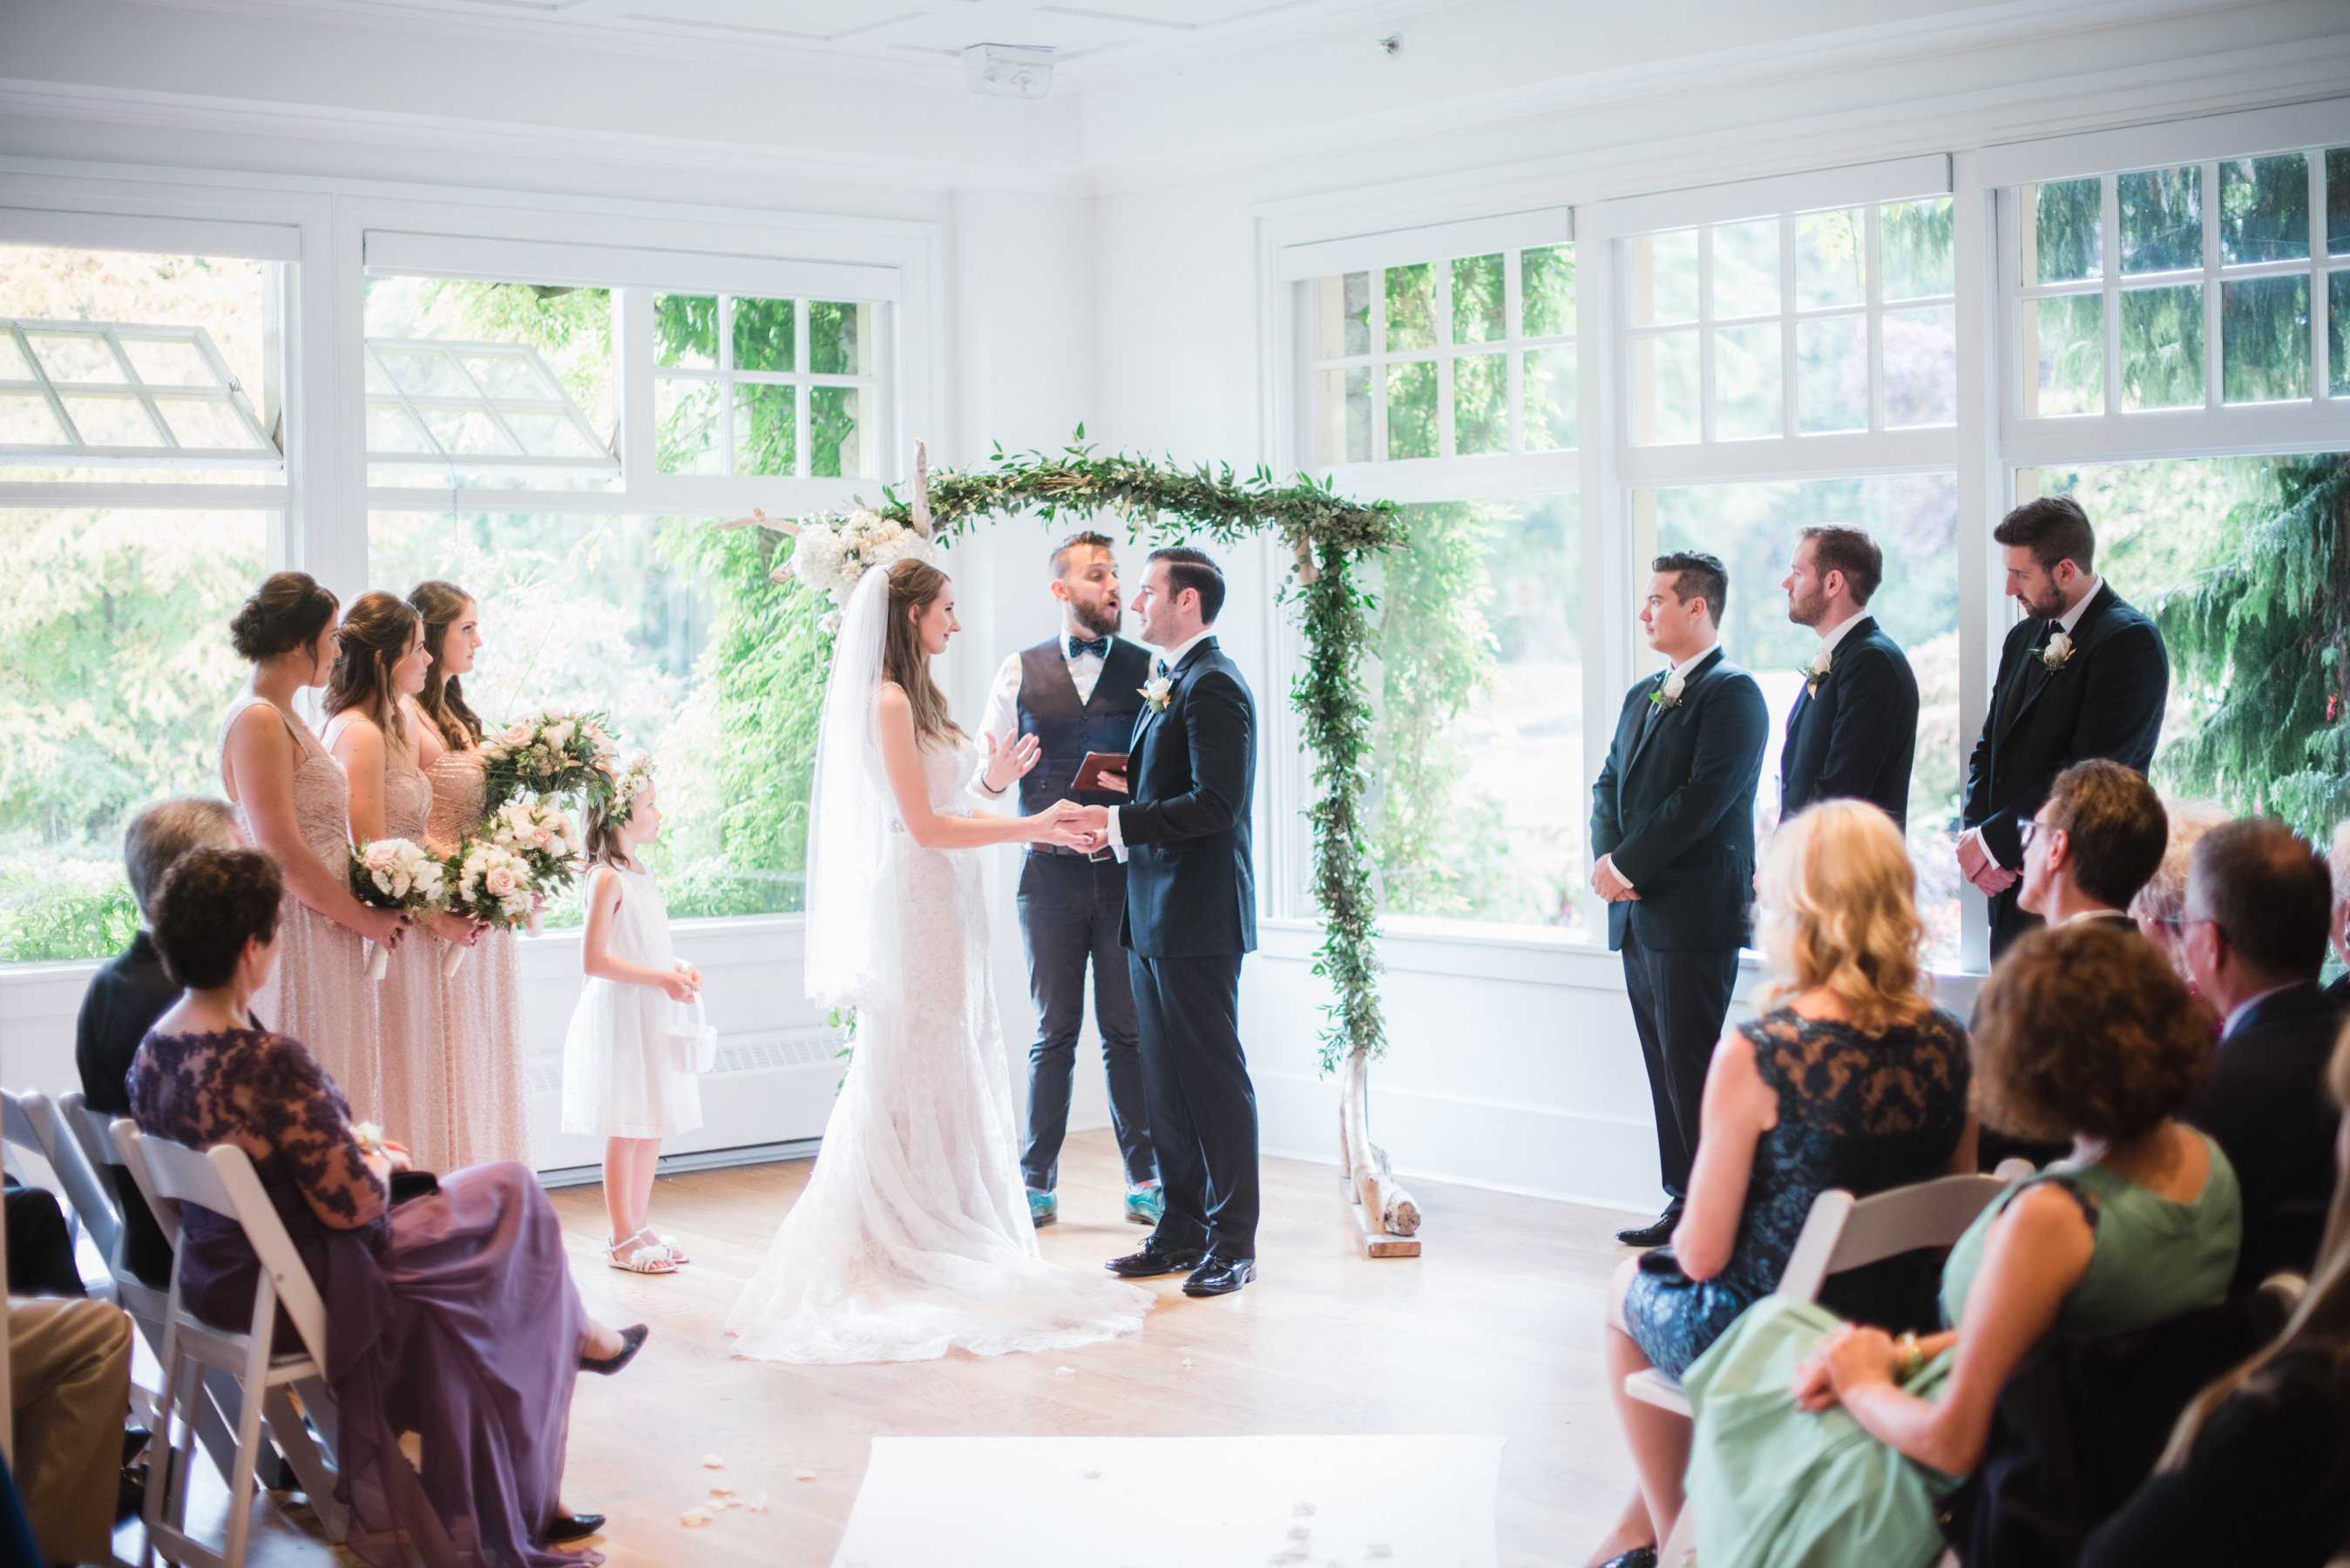 How to Choose The Wedding Officiant That's Right for You